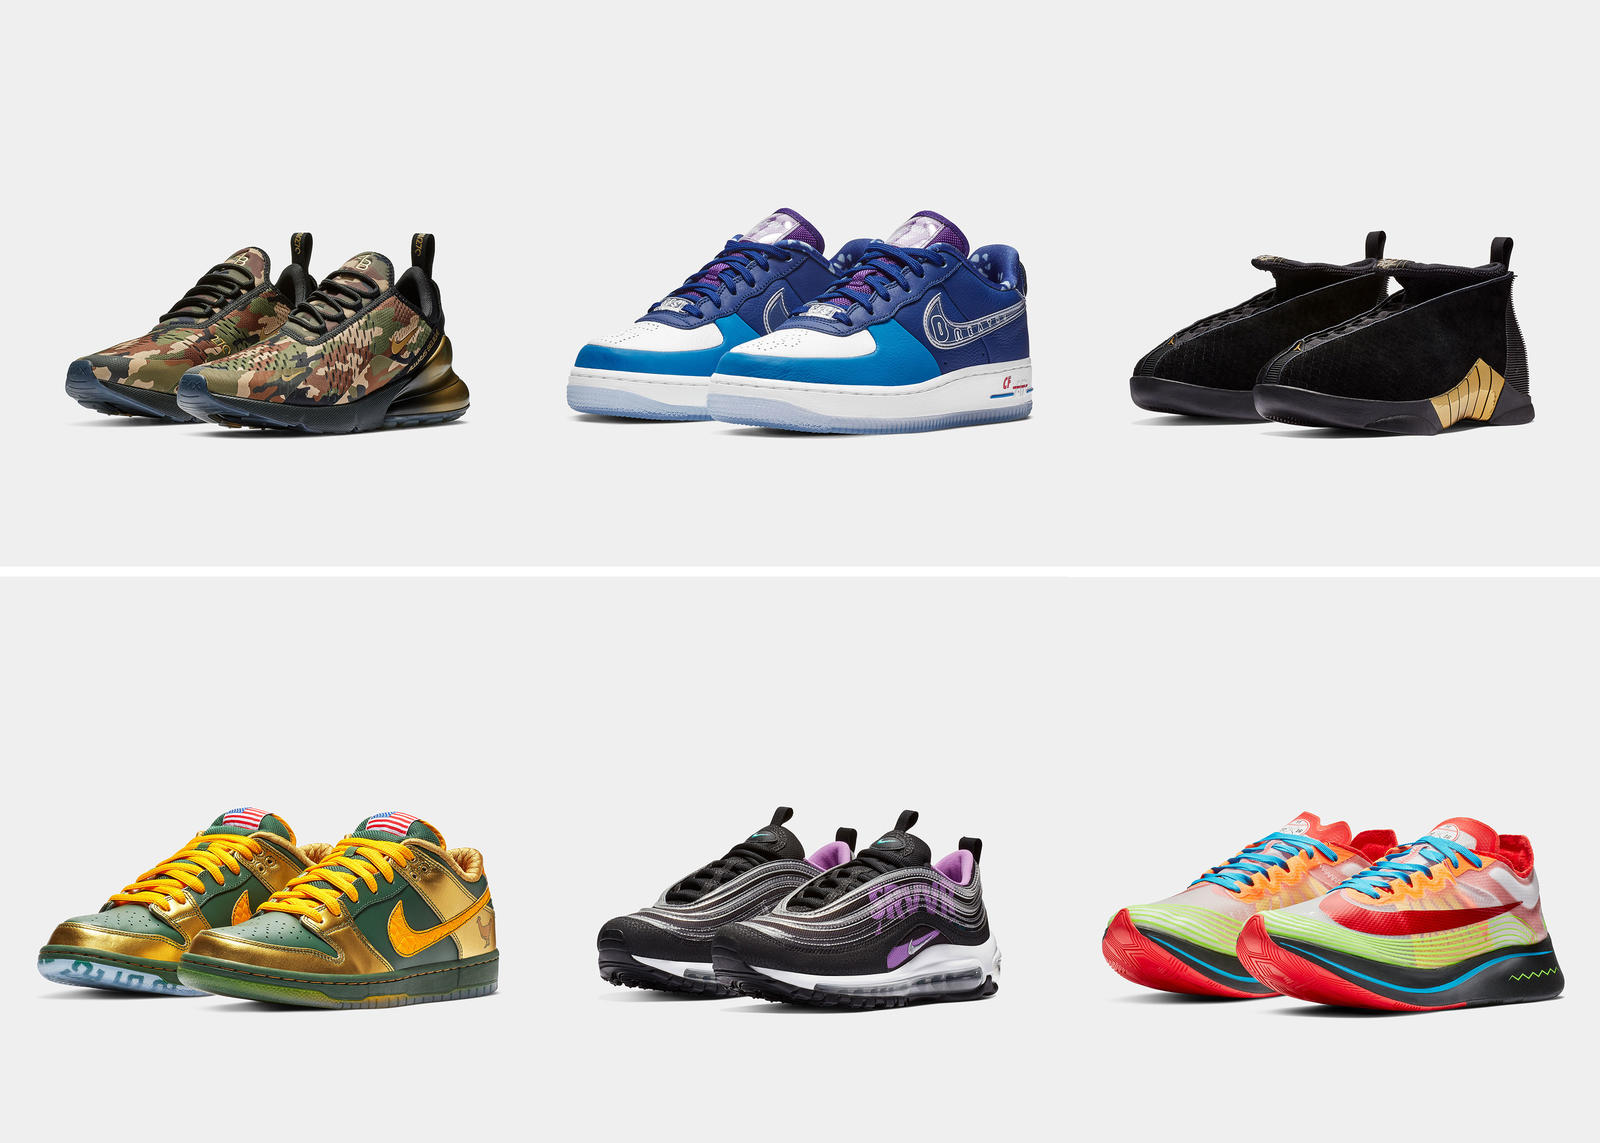 794e2e284695b1 Introducing the Doernbecher Freestyle 2018 Collection 14